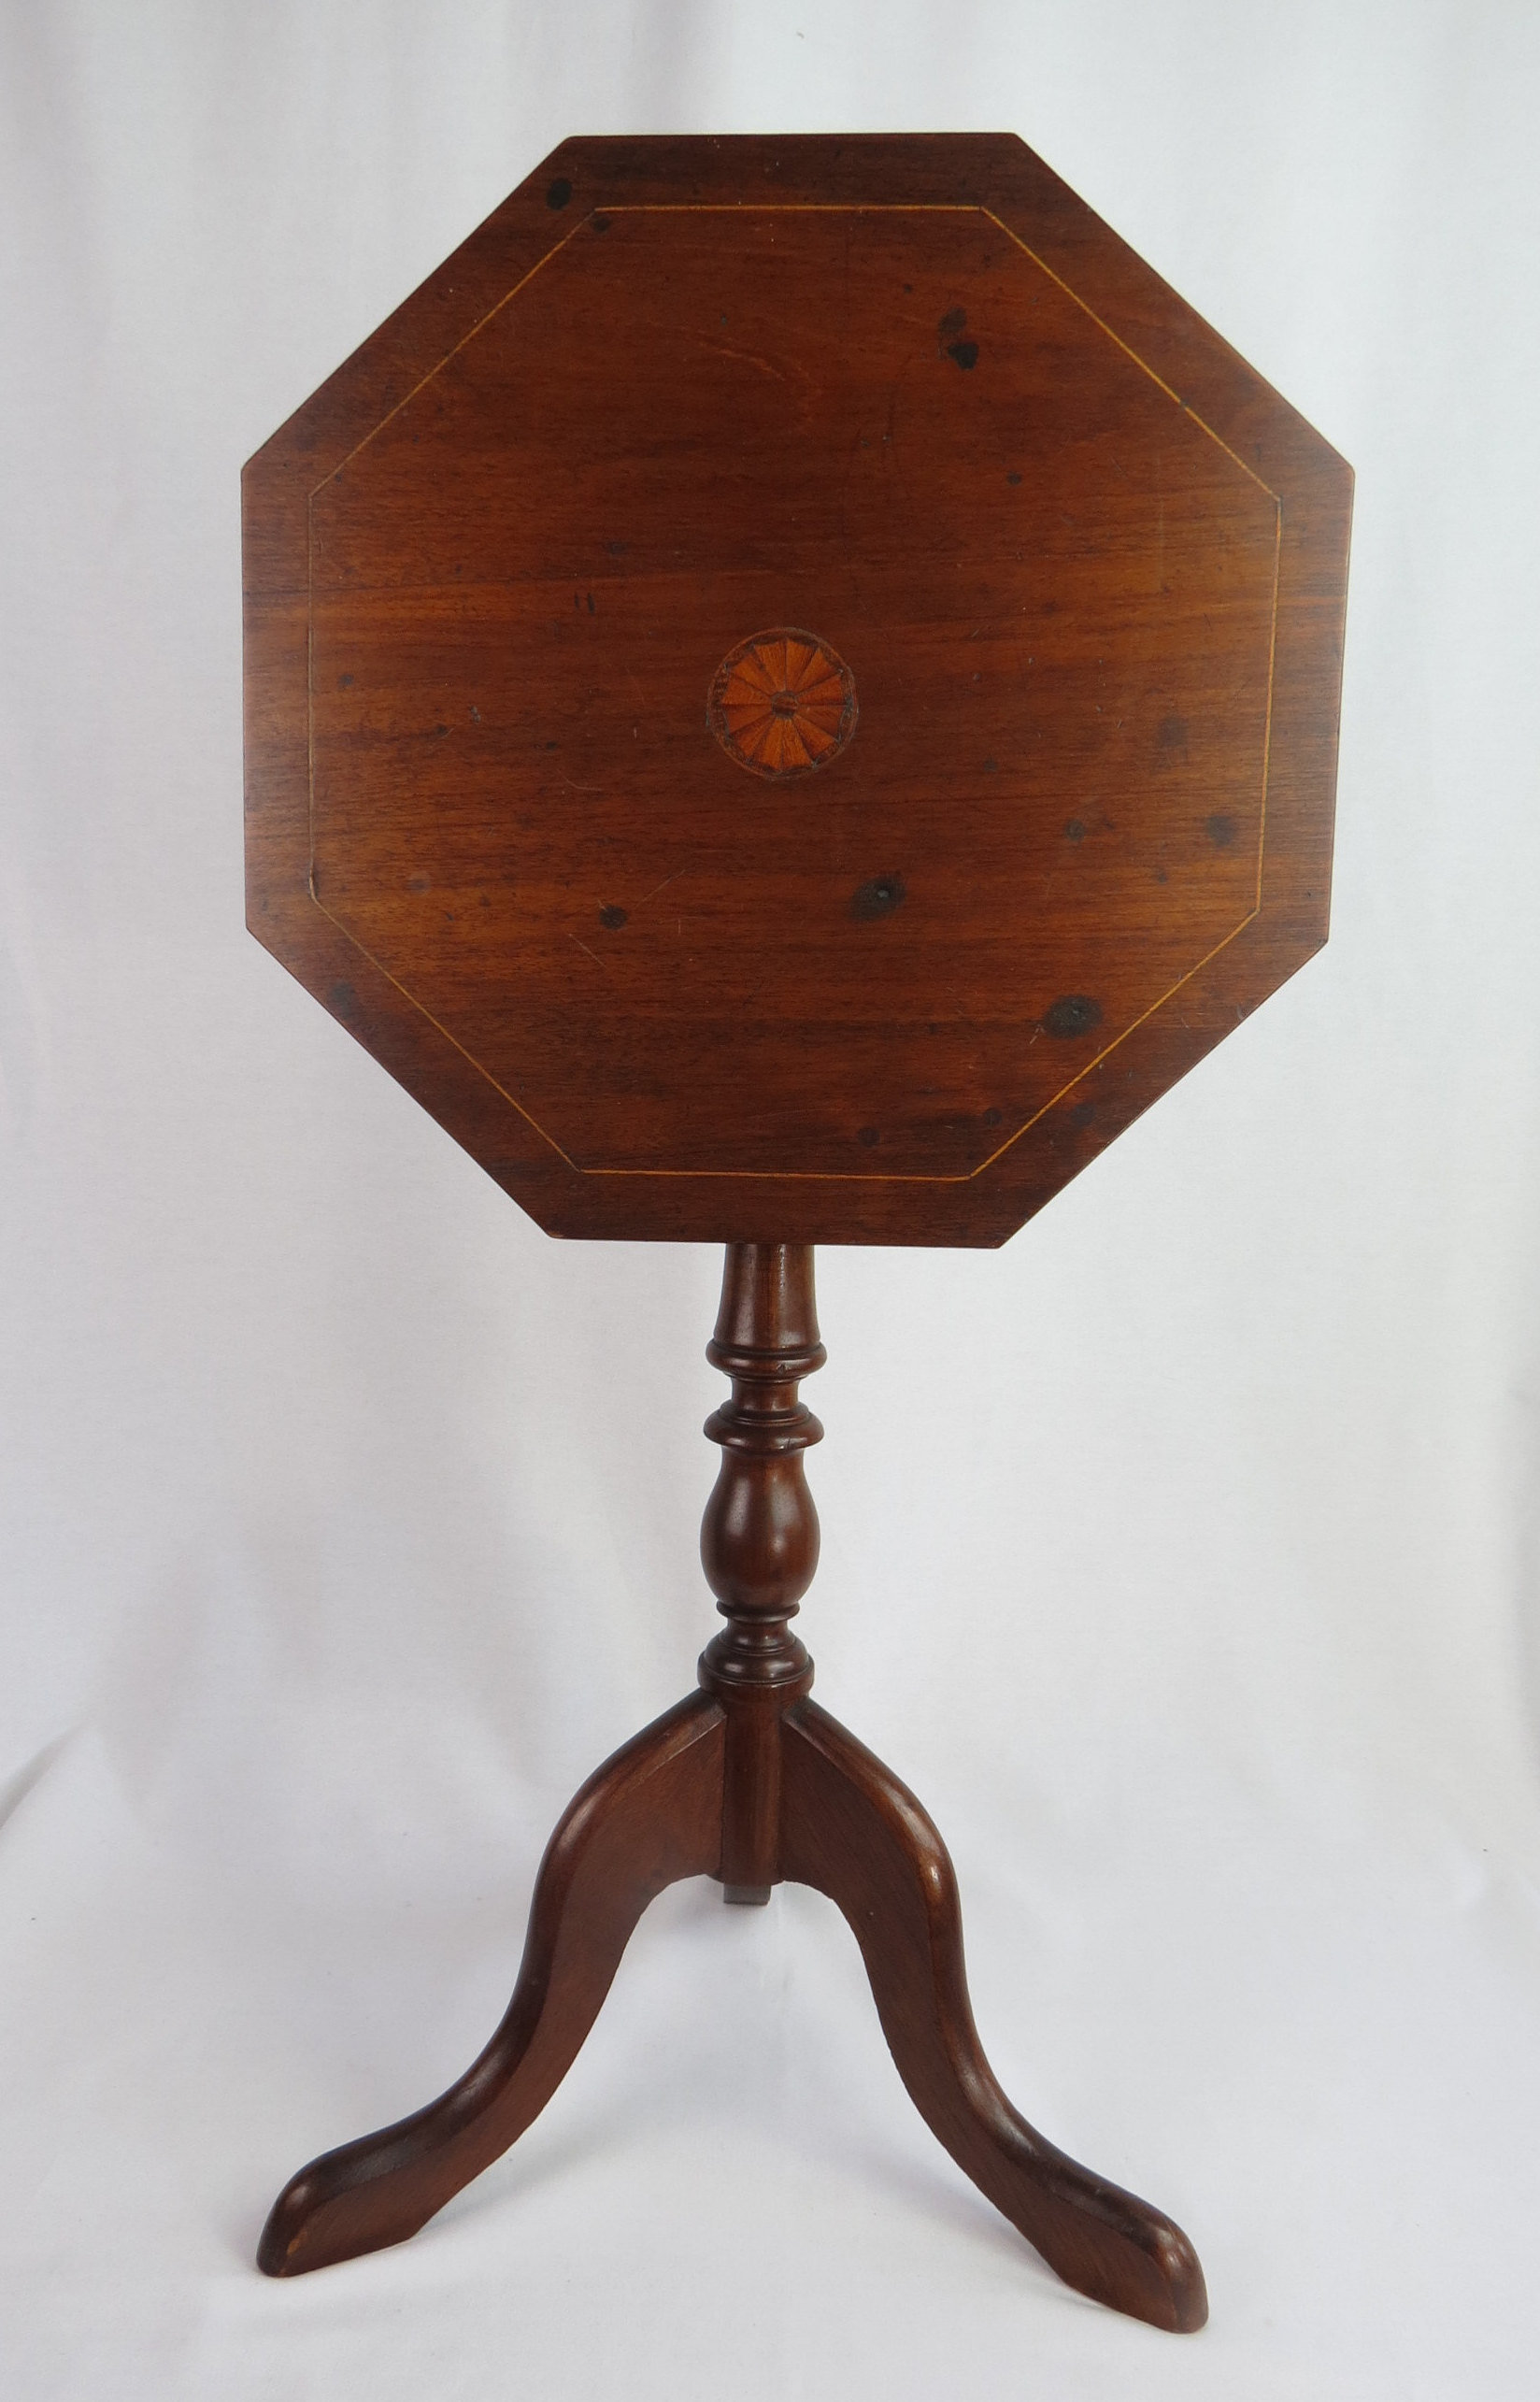 antique mahogany hexagon tilt top inlaid side table small etsy fullxfull aogv oval accent high end tables cool lamps marble coffee red oriental lamp modern dining room pier